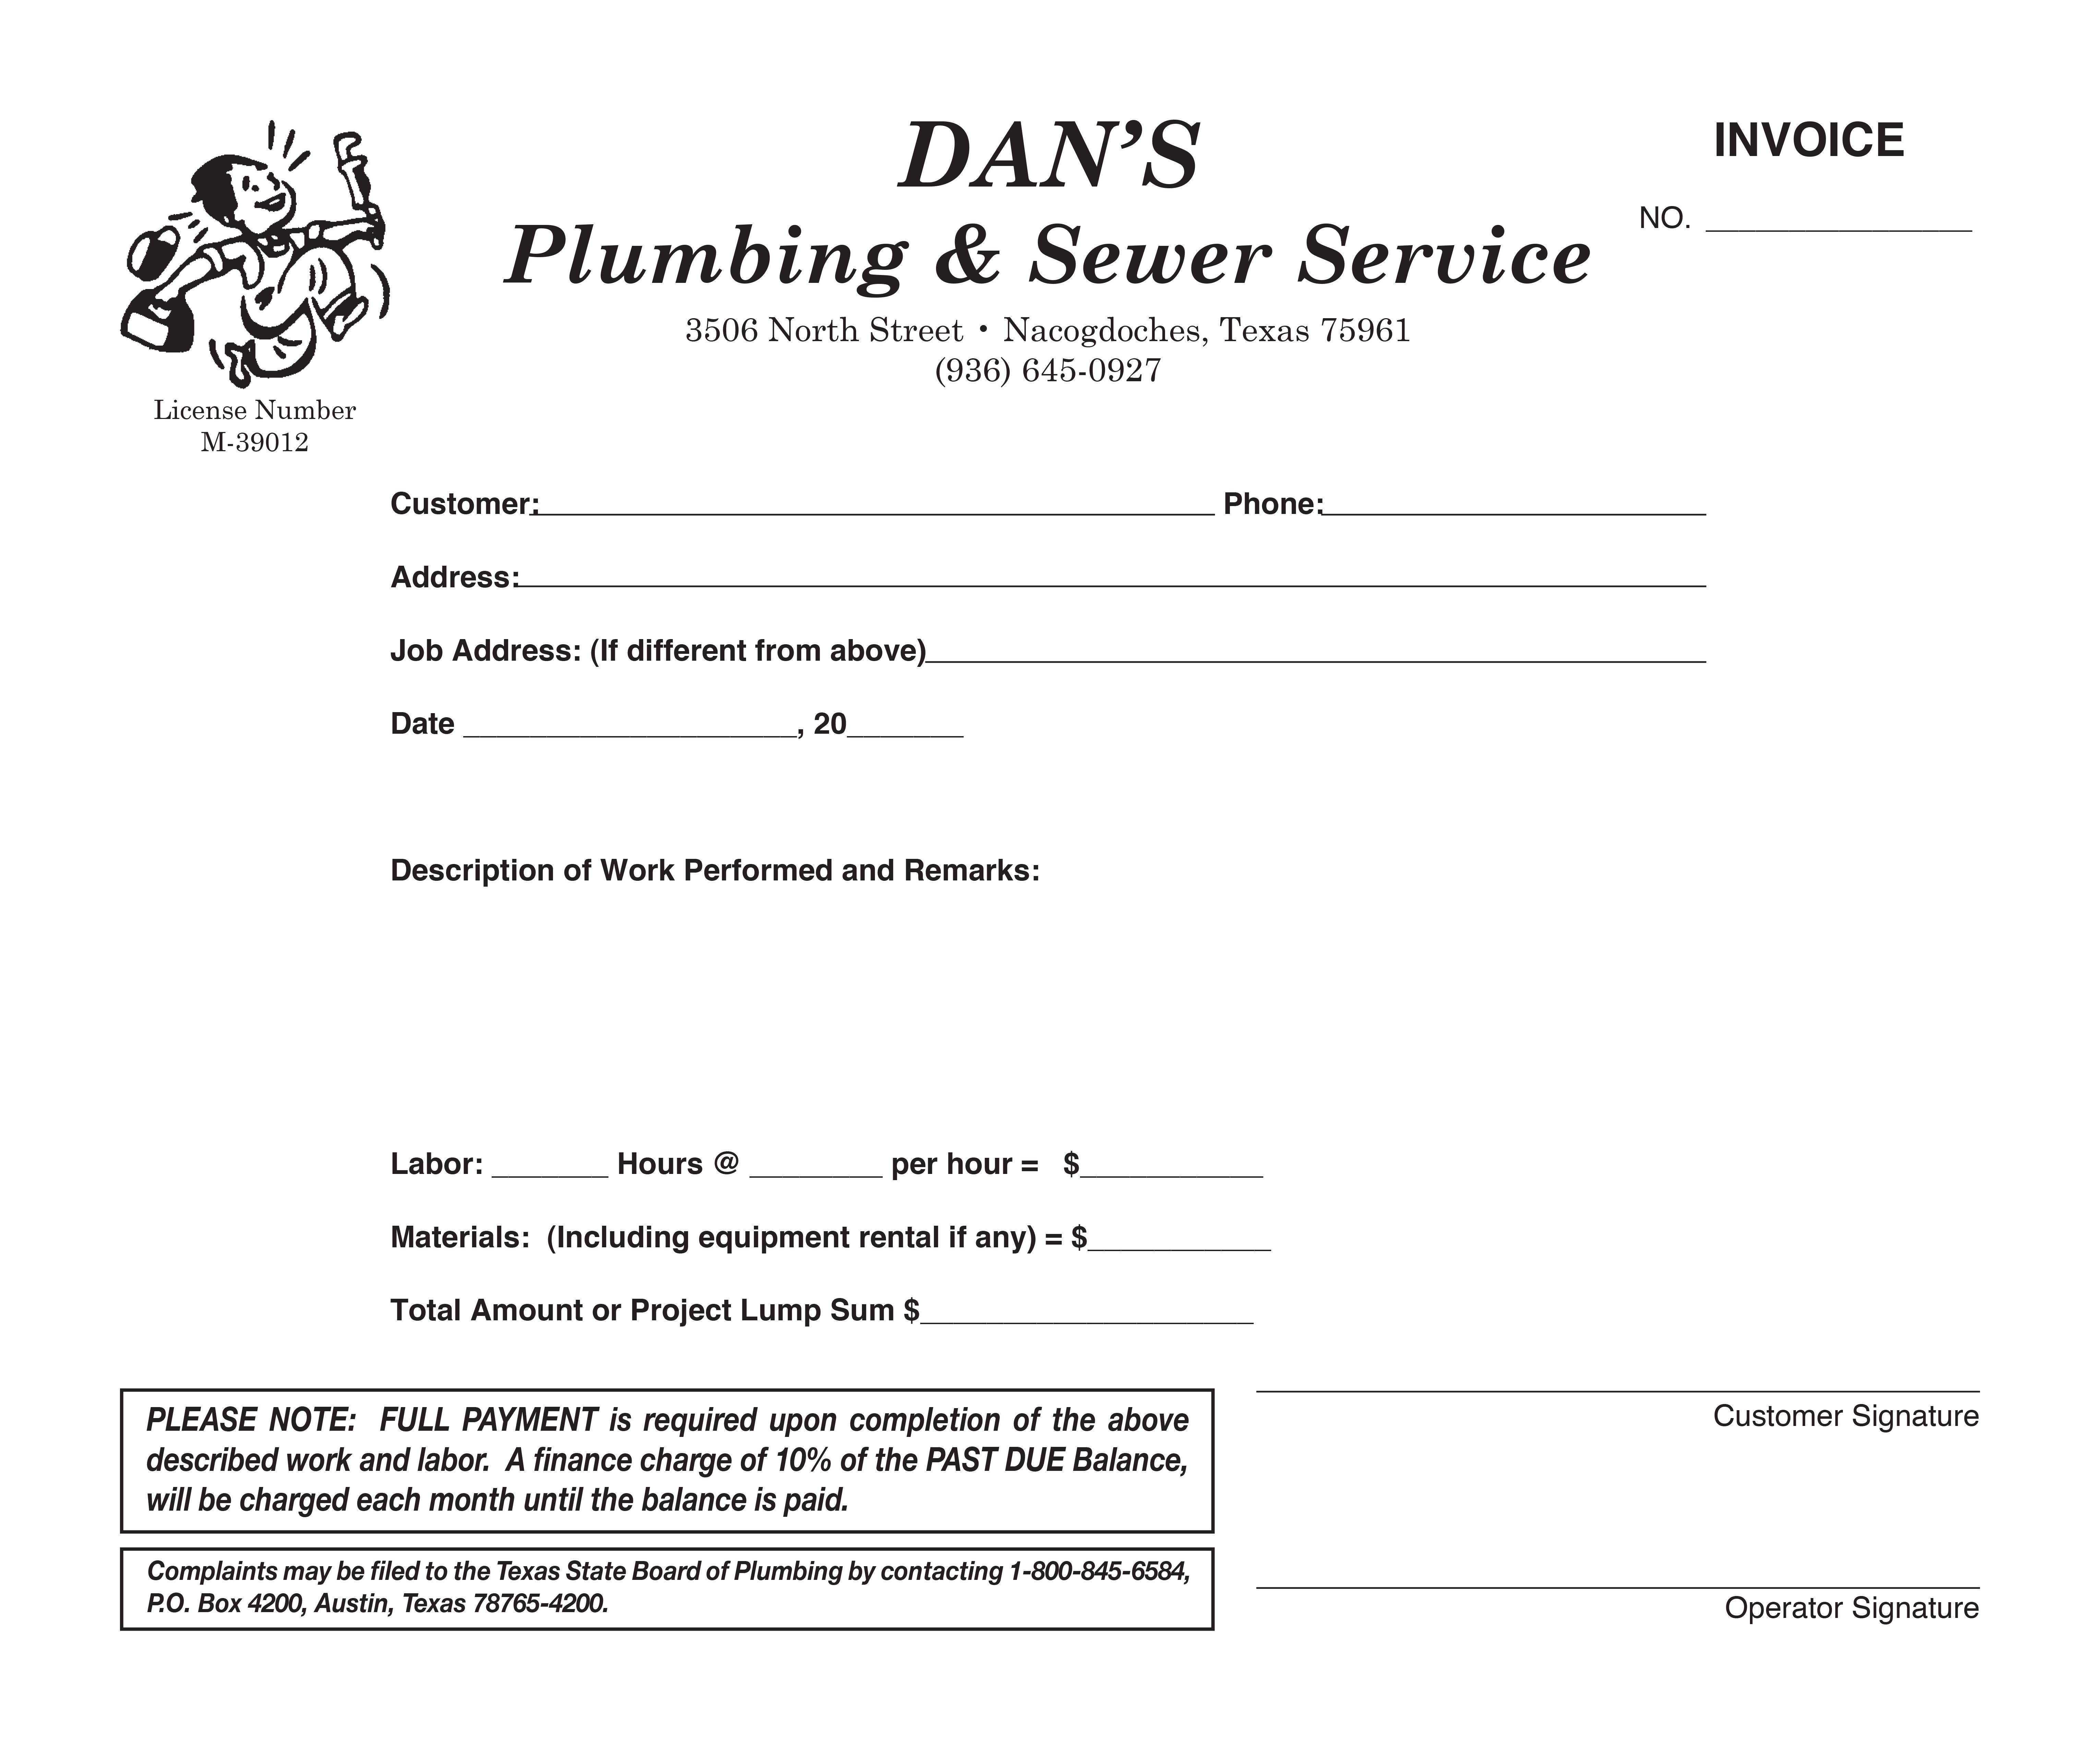 Plumbing And Sewer Service Invoice Printing Services Invoicing Service